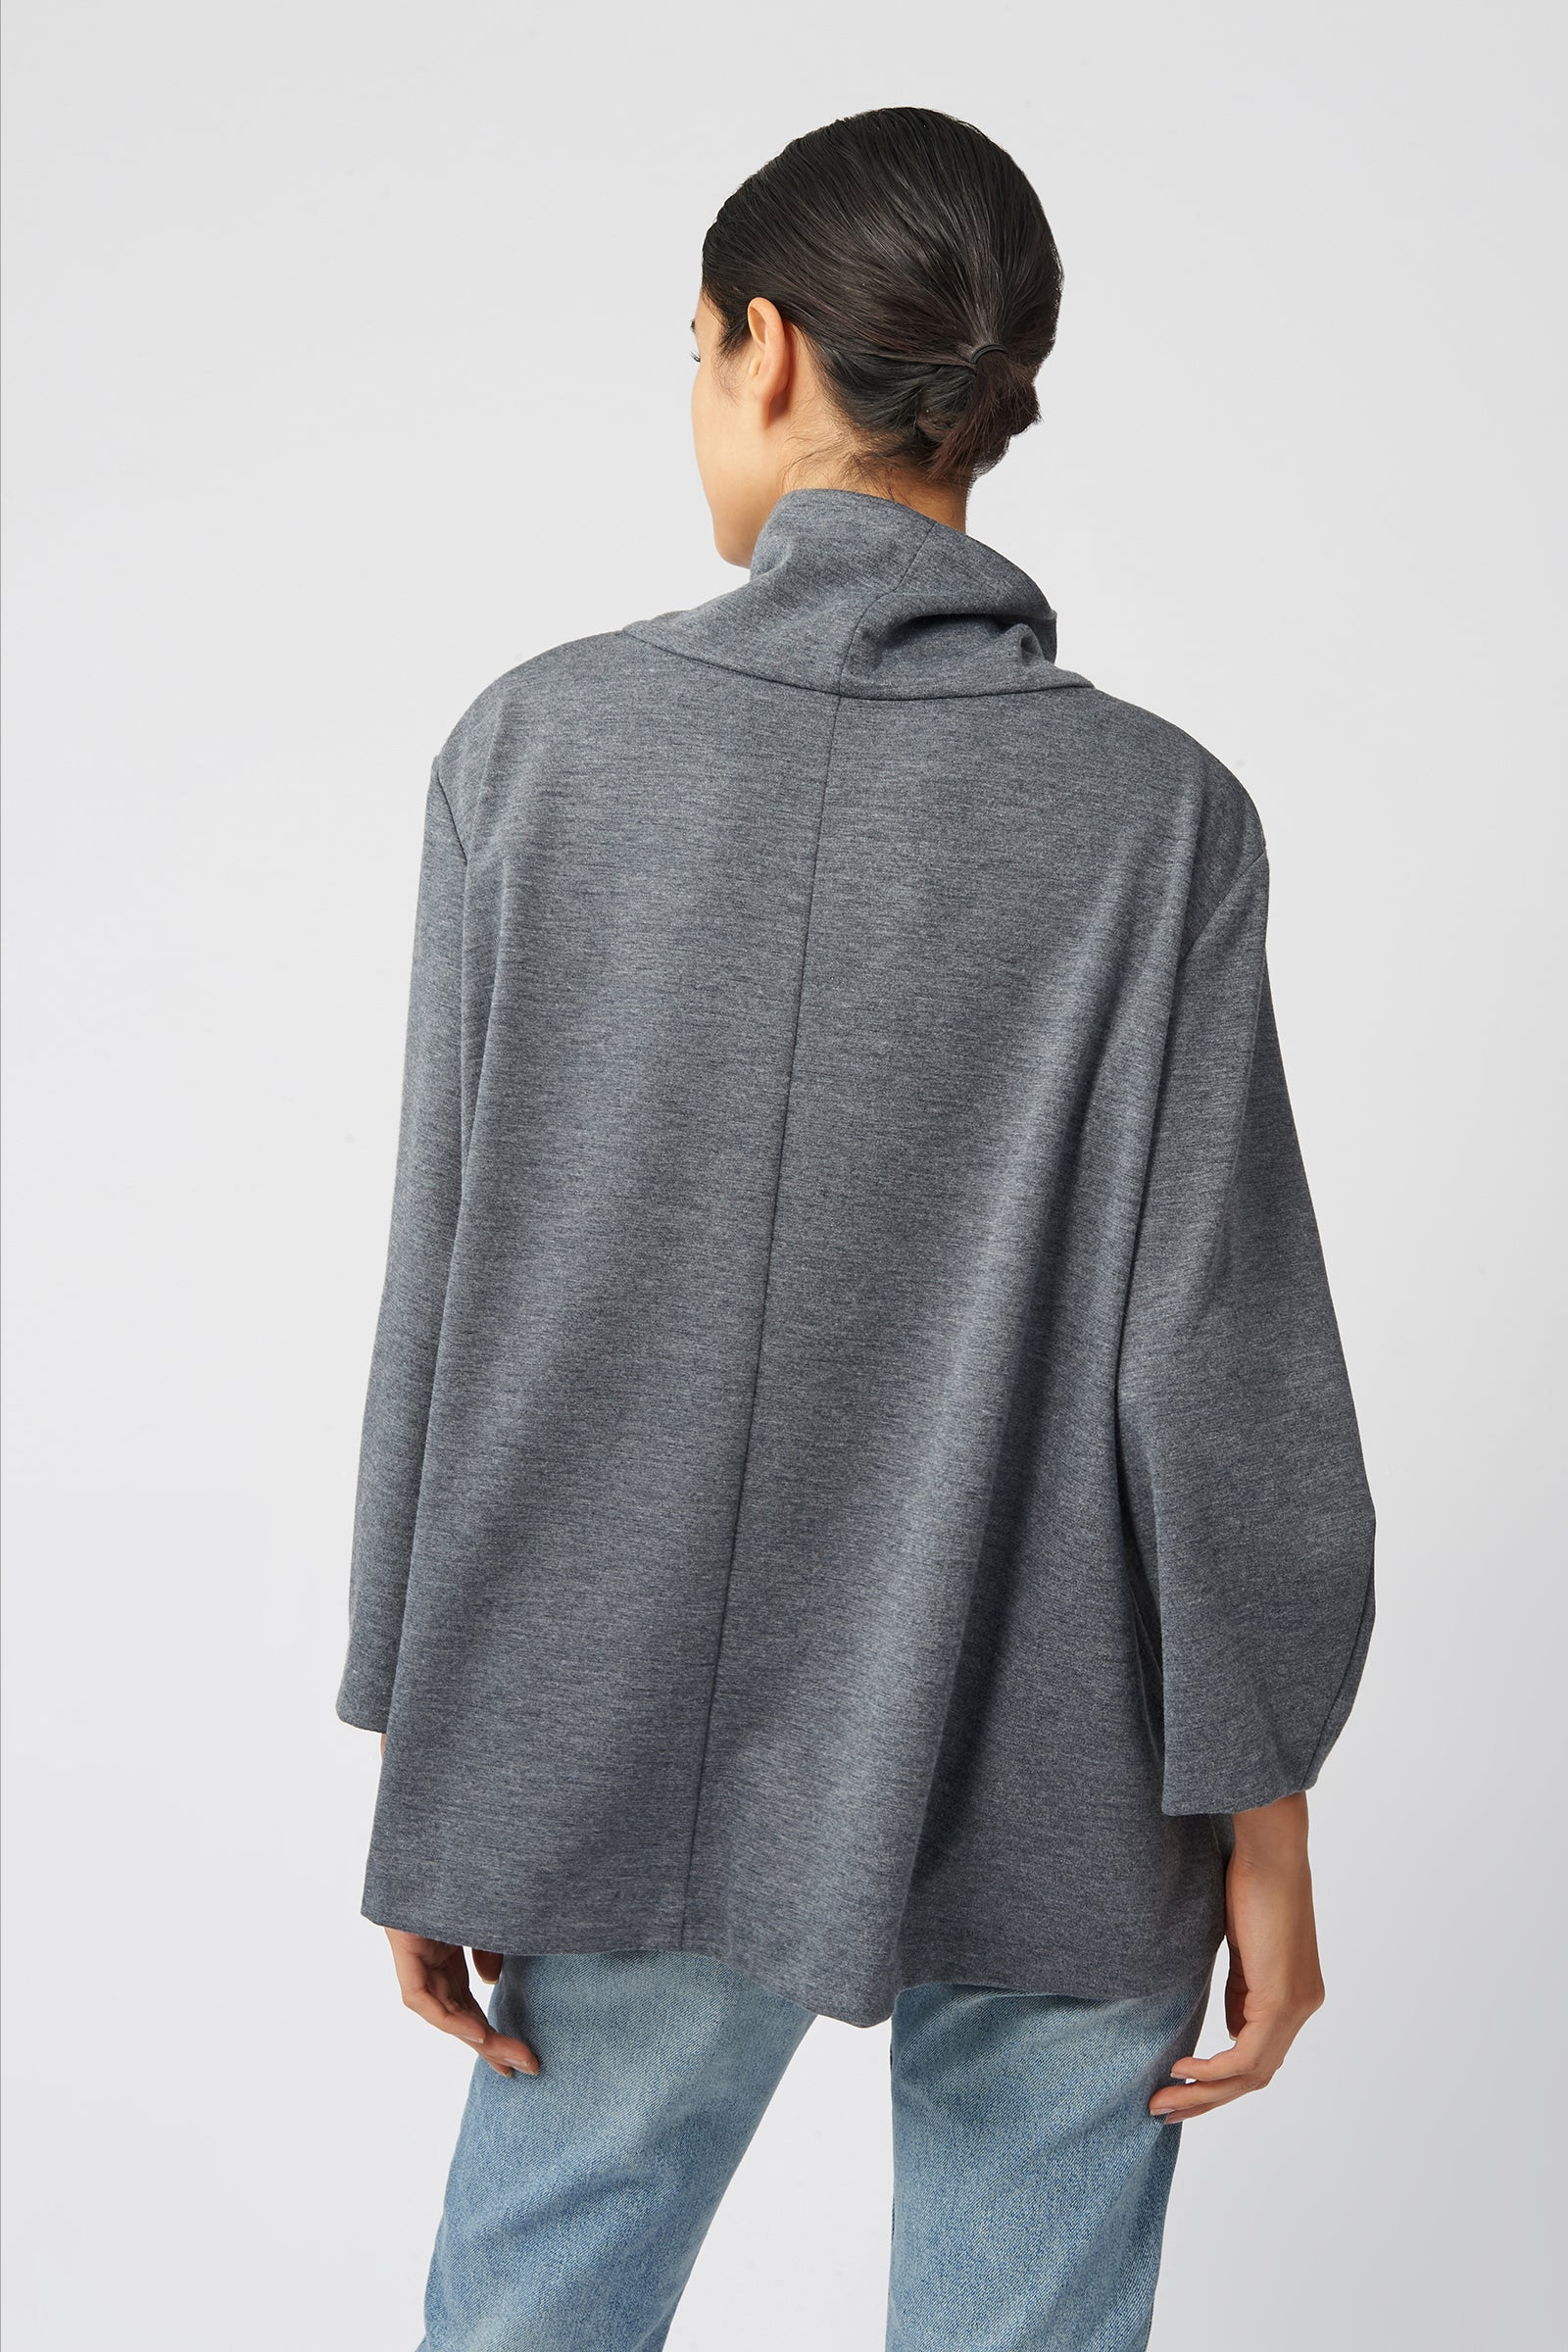 Kal Rieman Ponte Swing Turtleneck in Heather Grey on Model Front Side View